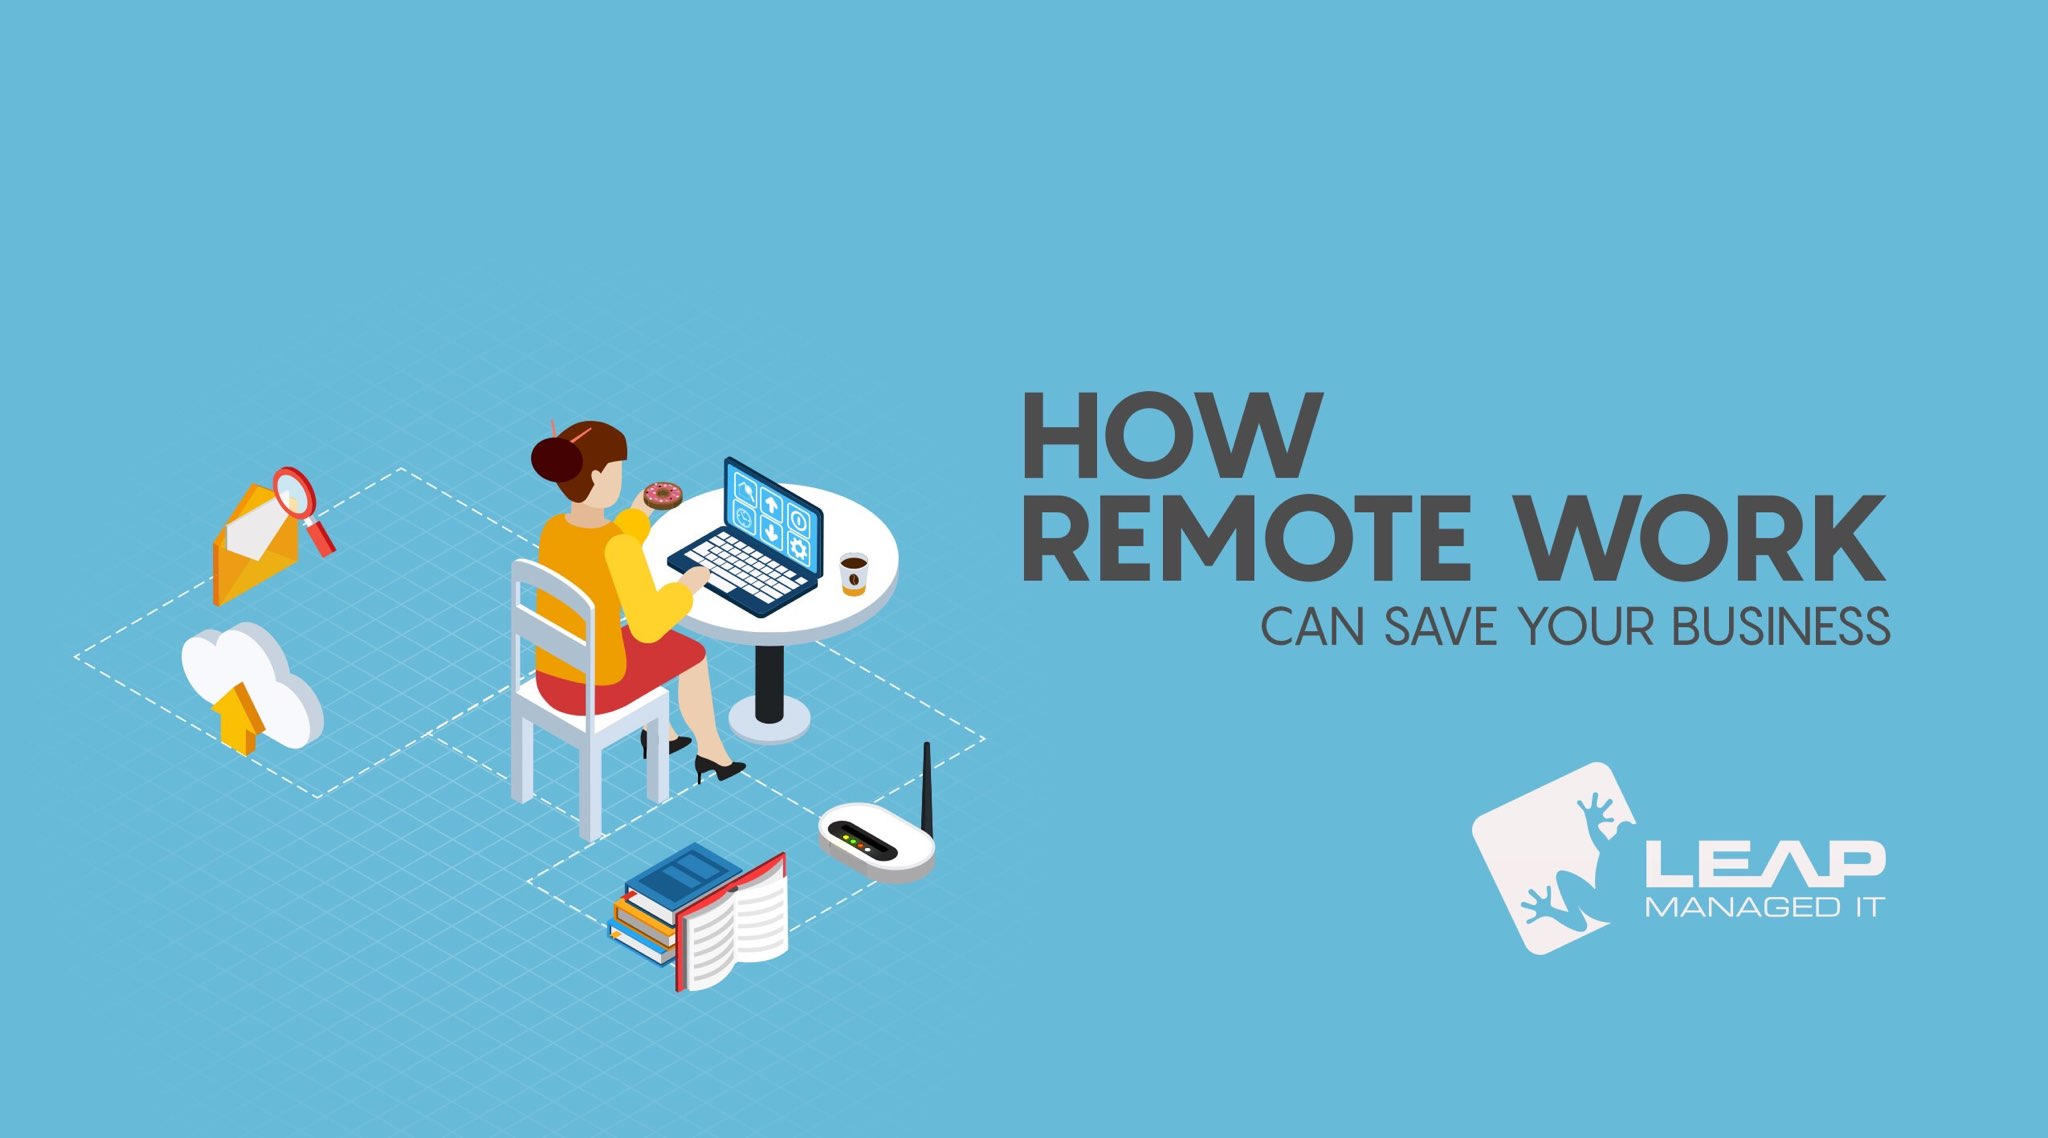 How Remote Work can Save your Business